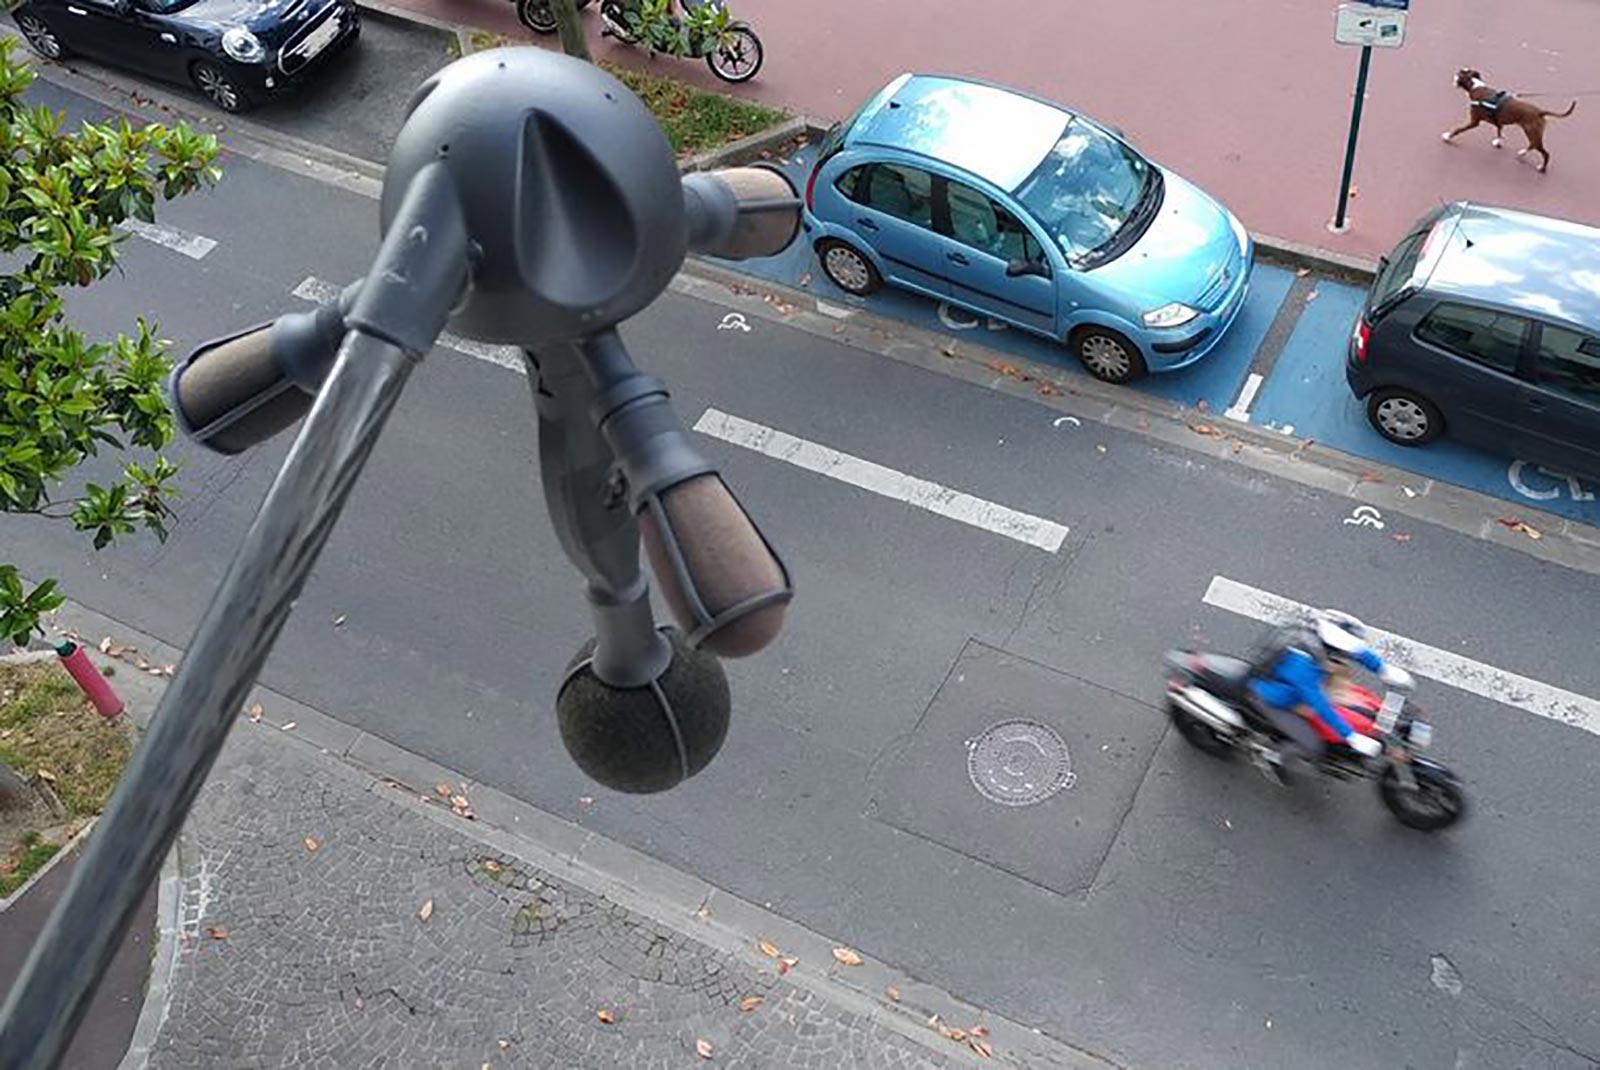 Paris Adds Noise Cameras to Catch Loud Exhaust Pipes